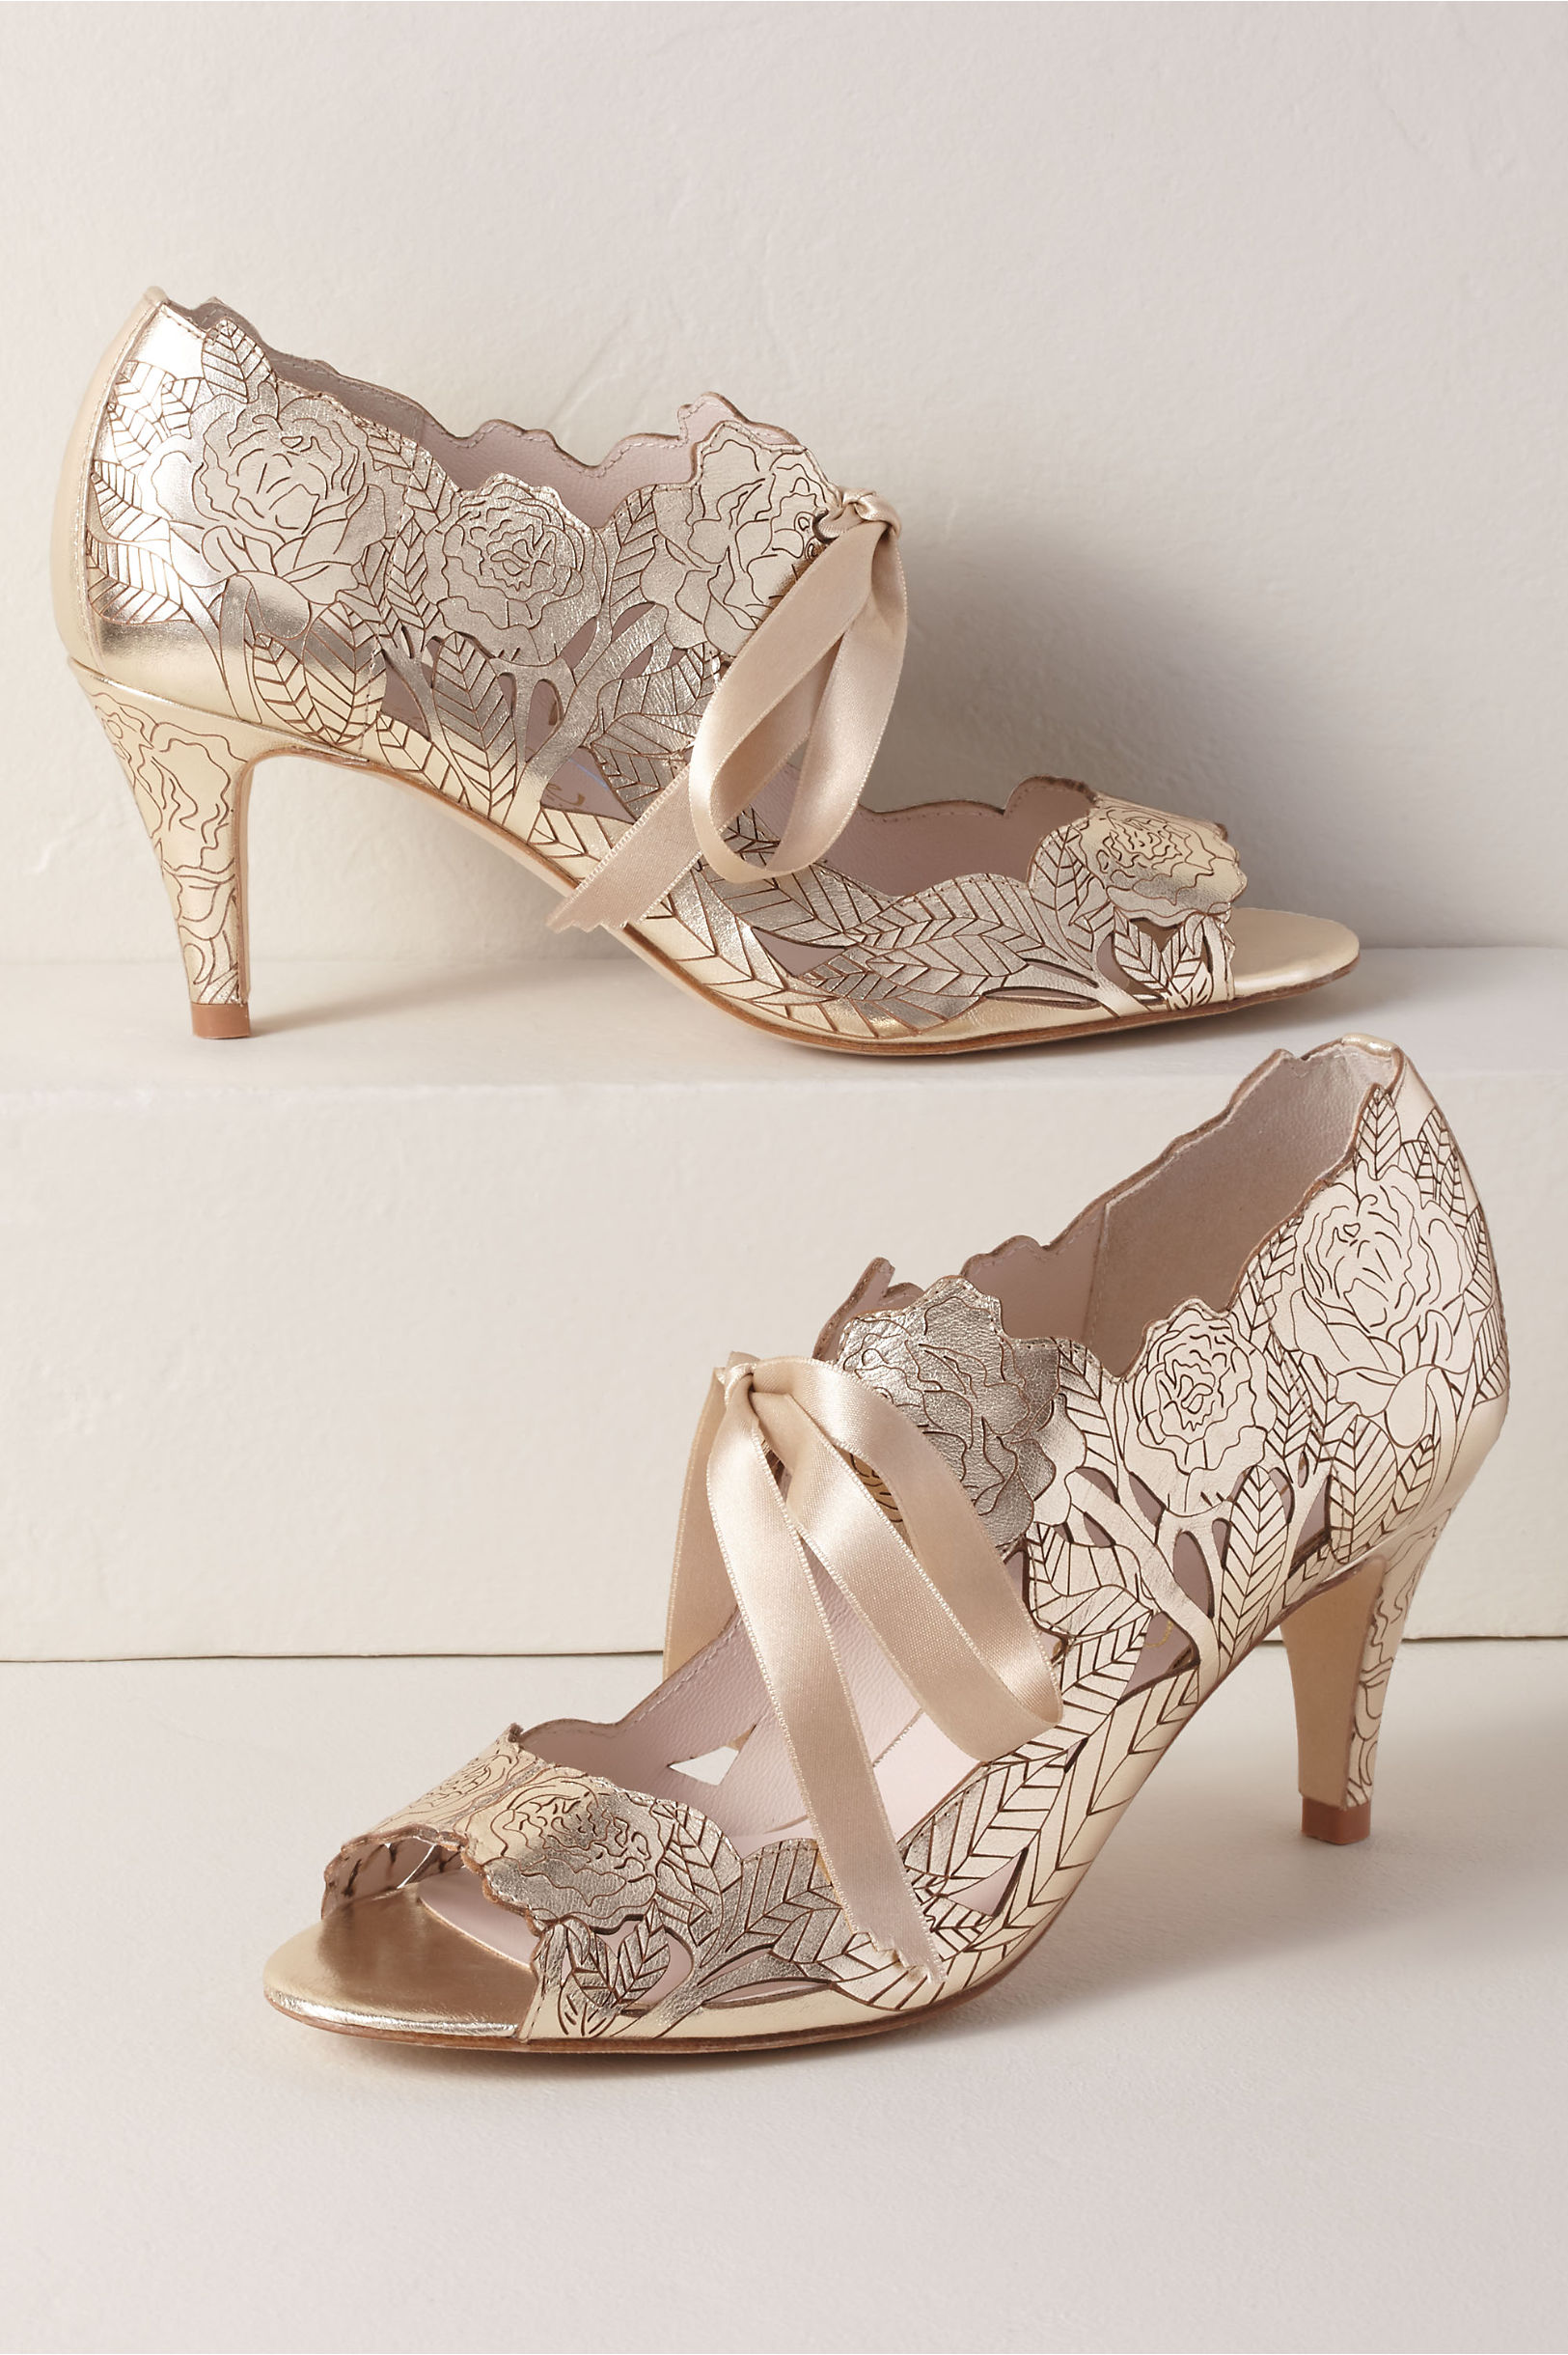 0f652c8ccf22 Featuring silver and ivory wedding shoes and more! BHLDN s Harriet Wilde  Harriet Wilde Peony Heels in Gold